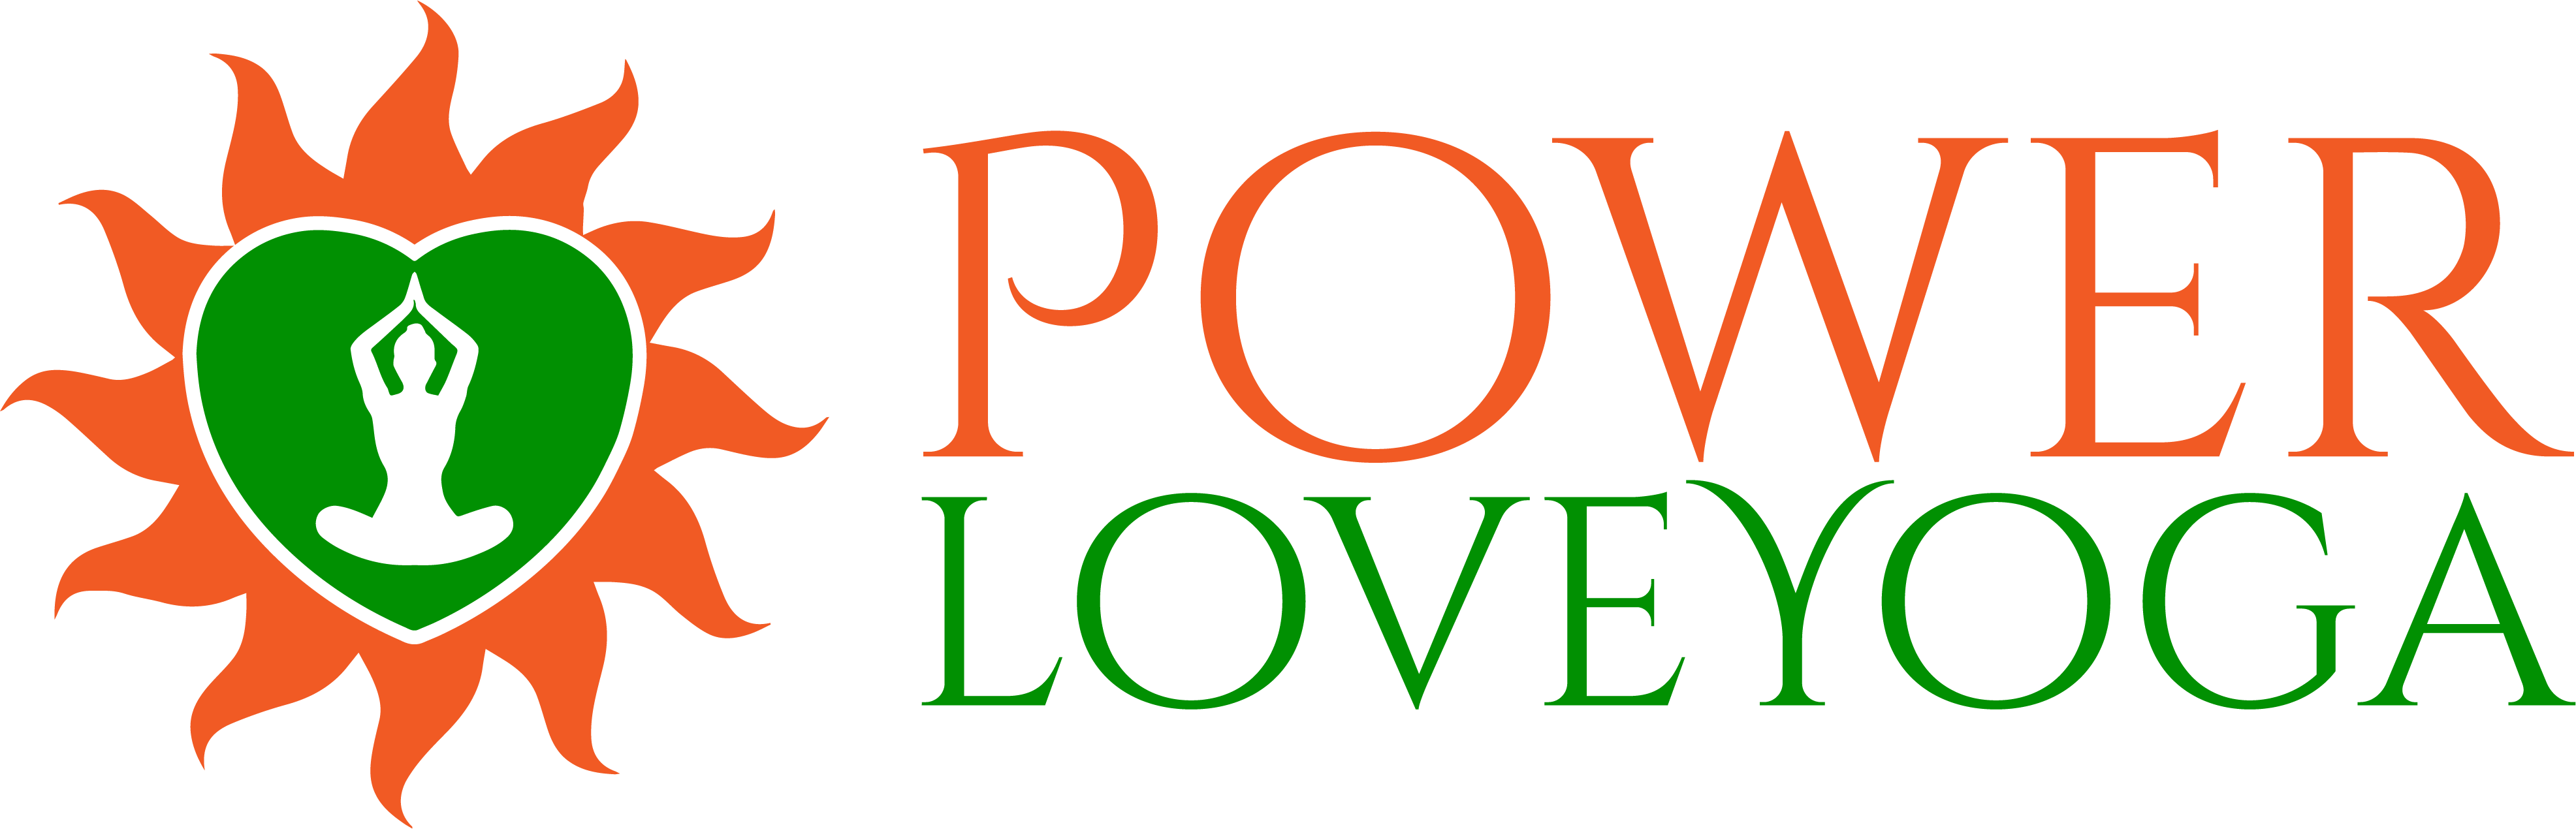 PowerLoveYoga | Love consciousness, healthy lifestyle and empowerment of human spirit through the practice of yoga.